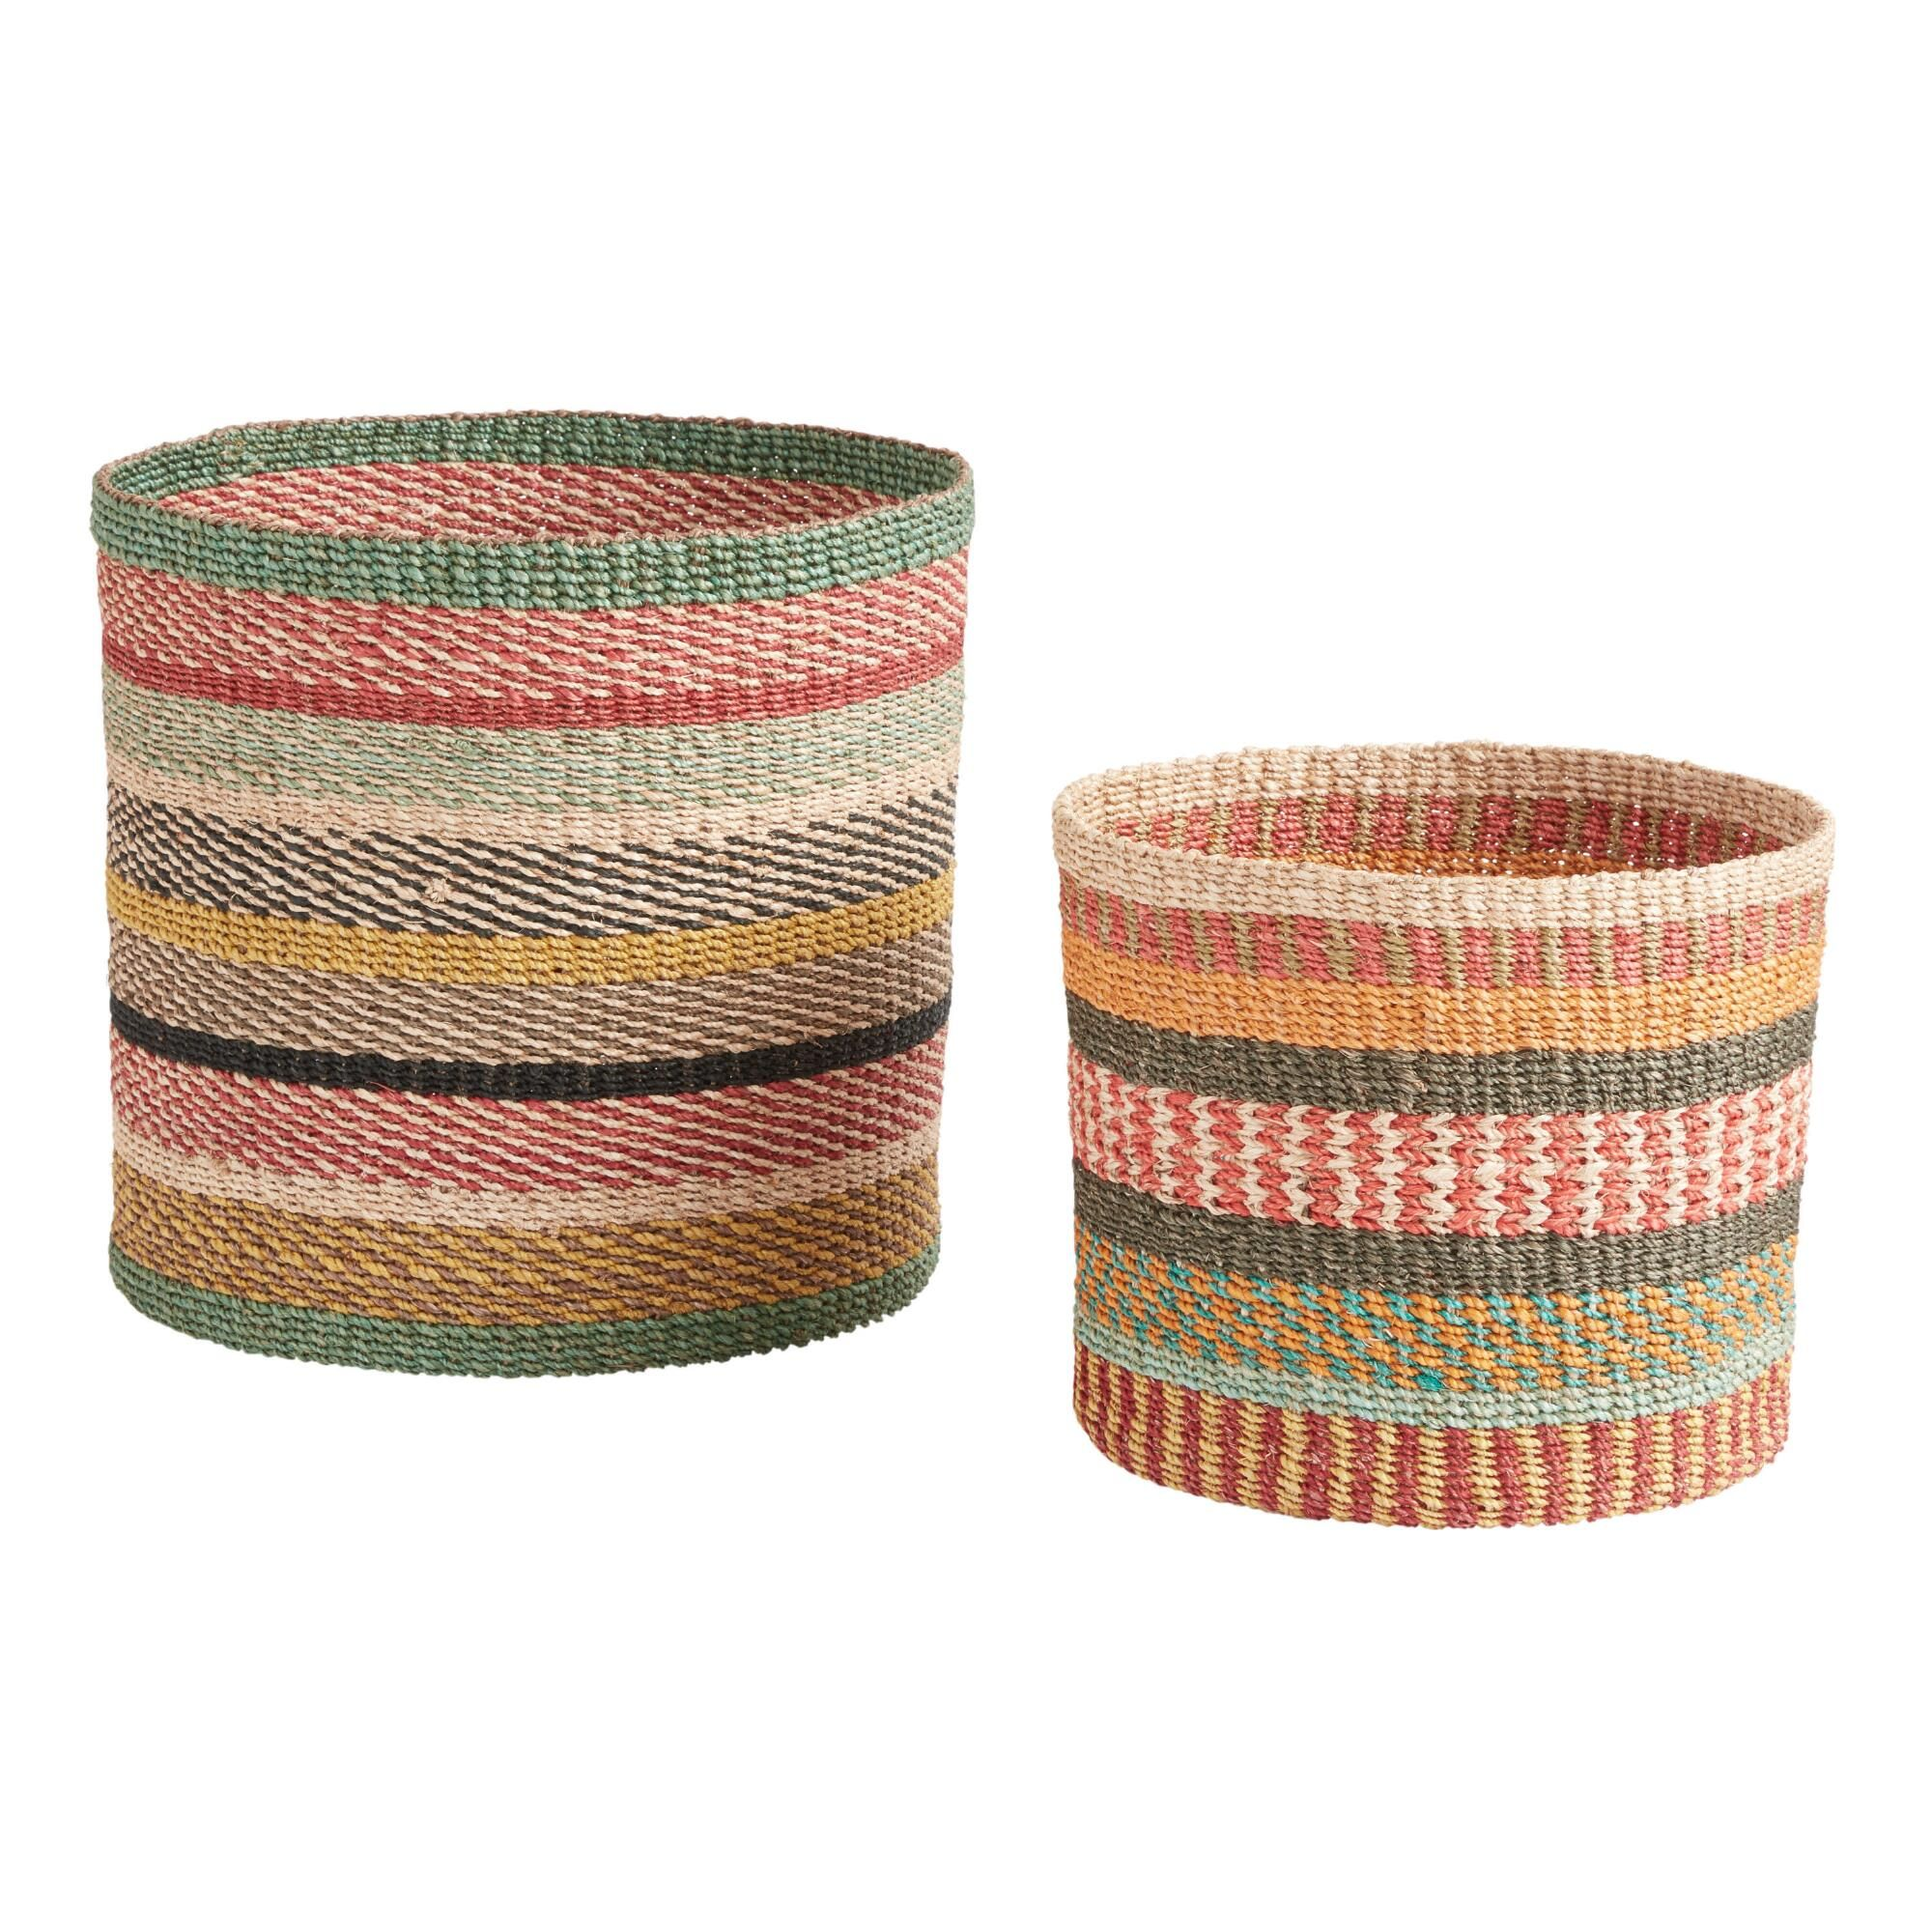 We Re Huge Fans Of This Colorful Round Basket That S Coiled By Hand Using Dyed Abaca Rope For Flair That S Unique Basket And Crate Basket Weaving Summer Decor